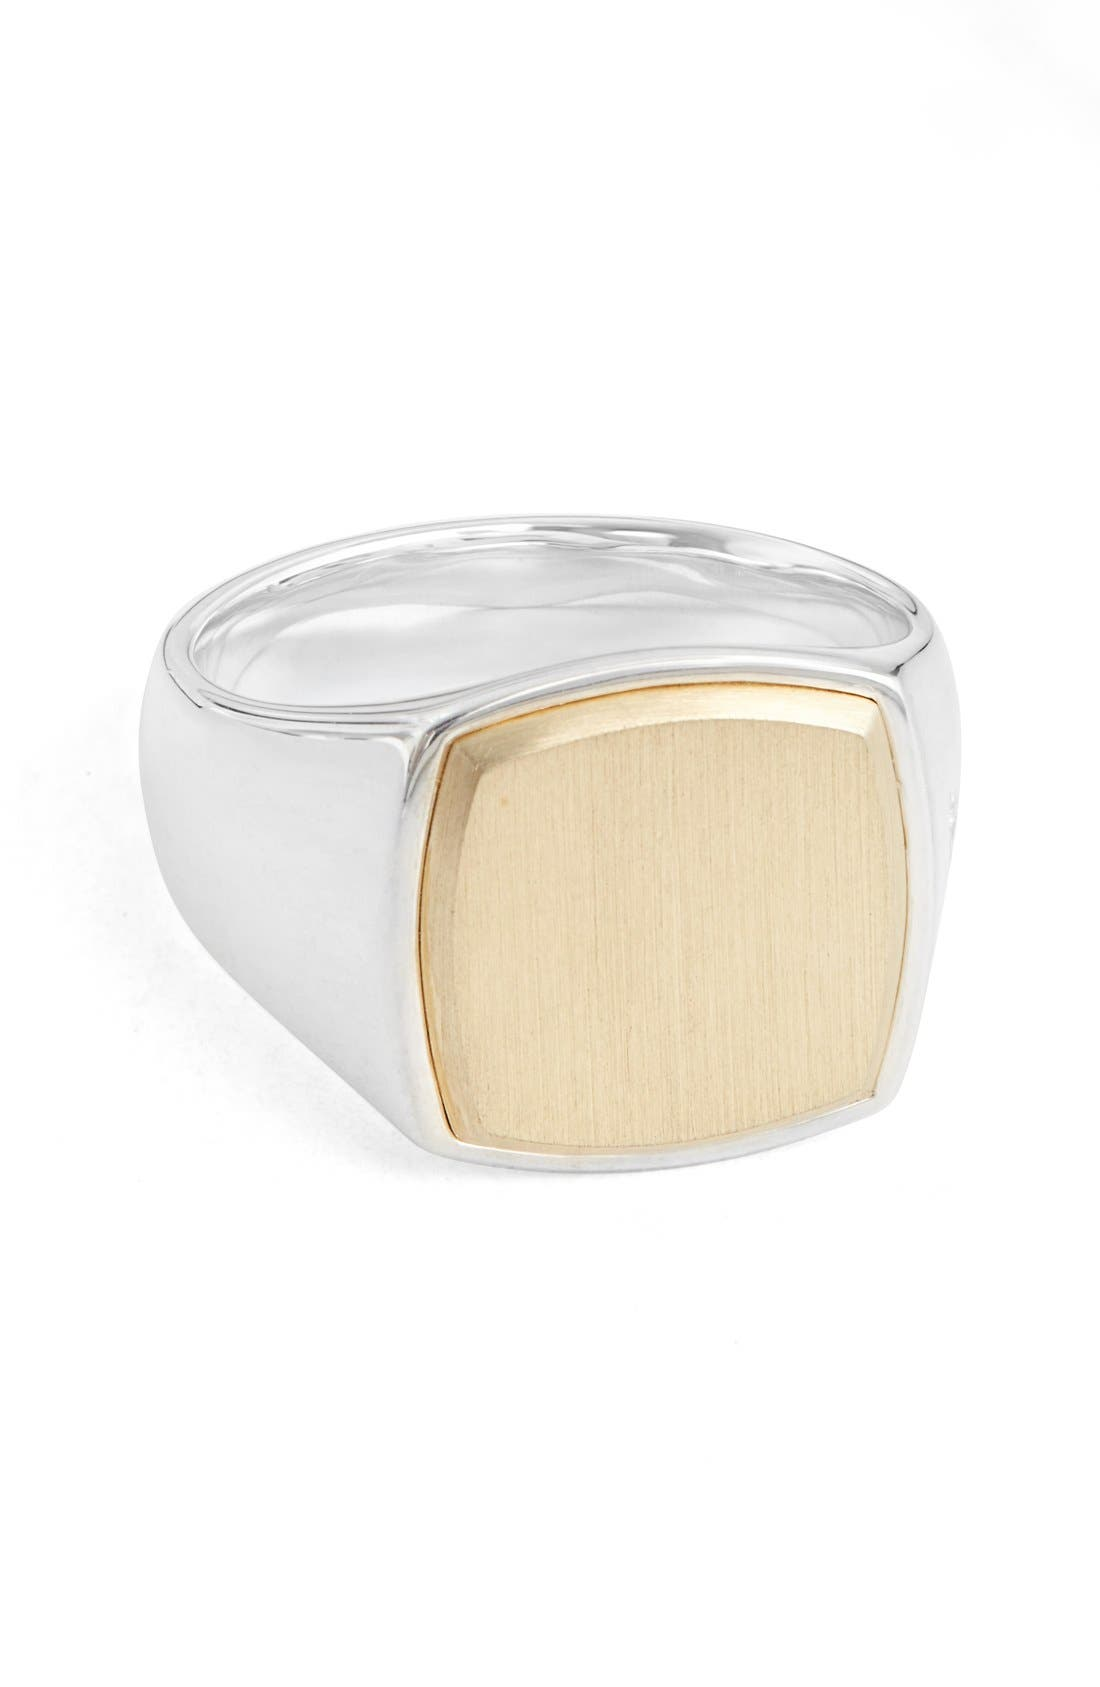 'Patriot Collection' Cushion Gold Top Signet Ring,                         Main,                         color,